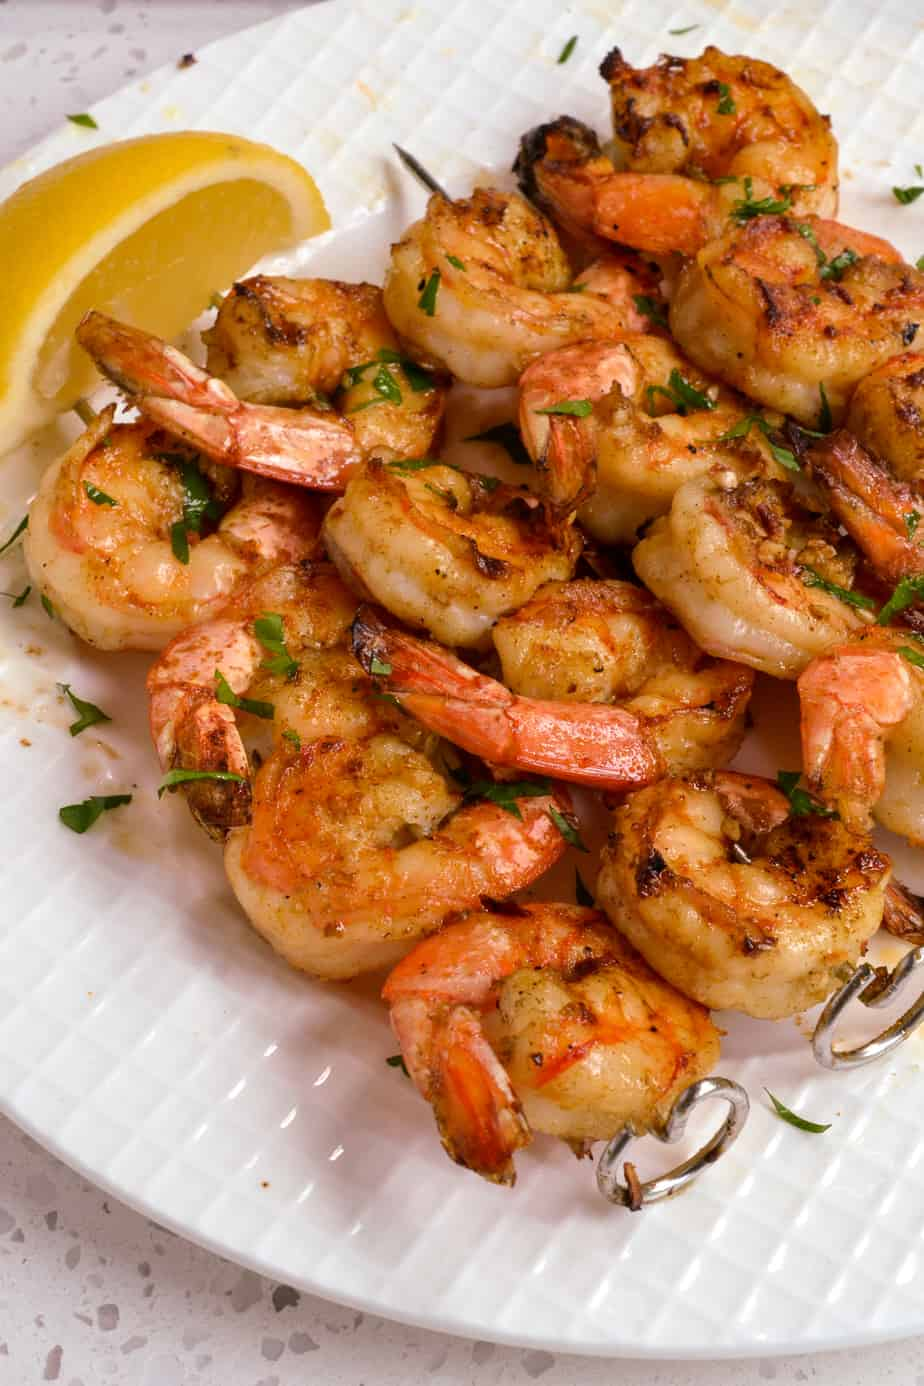 Fresh shrimp grilled with lemon and parsley.